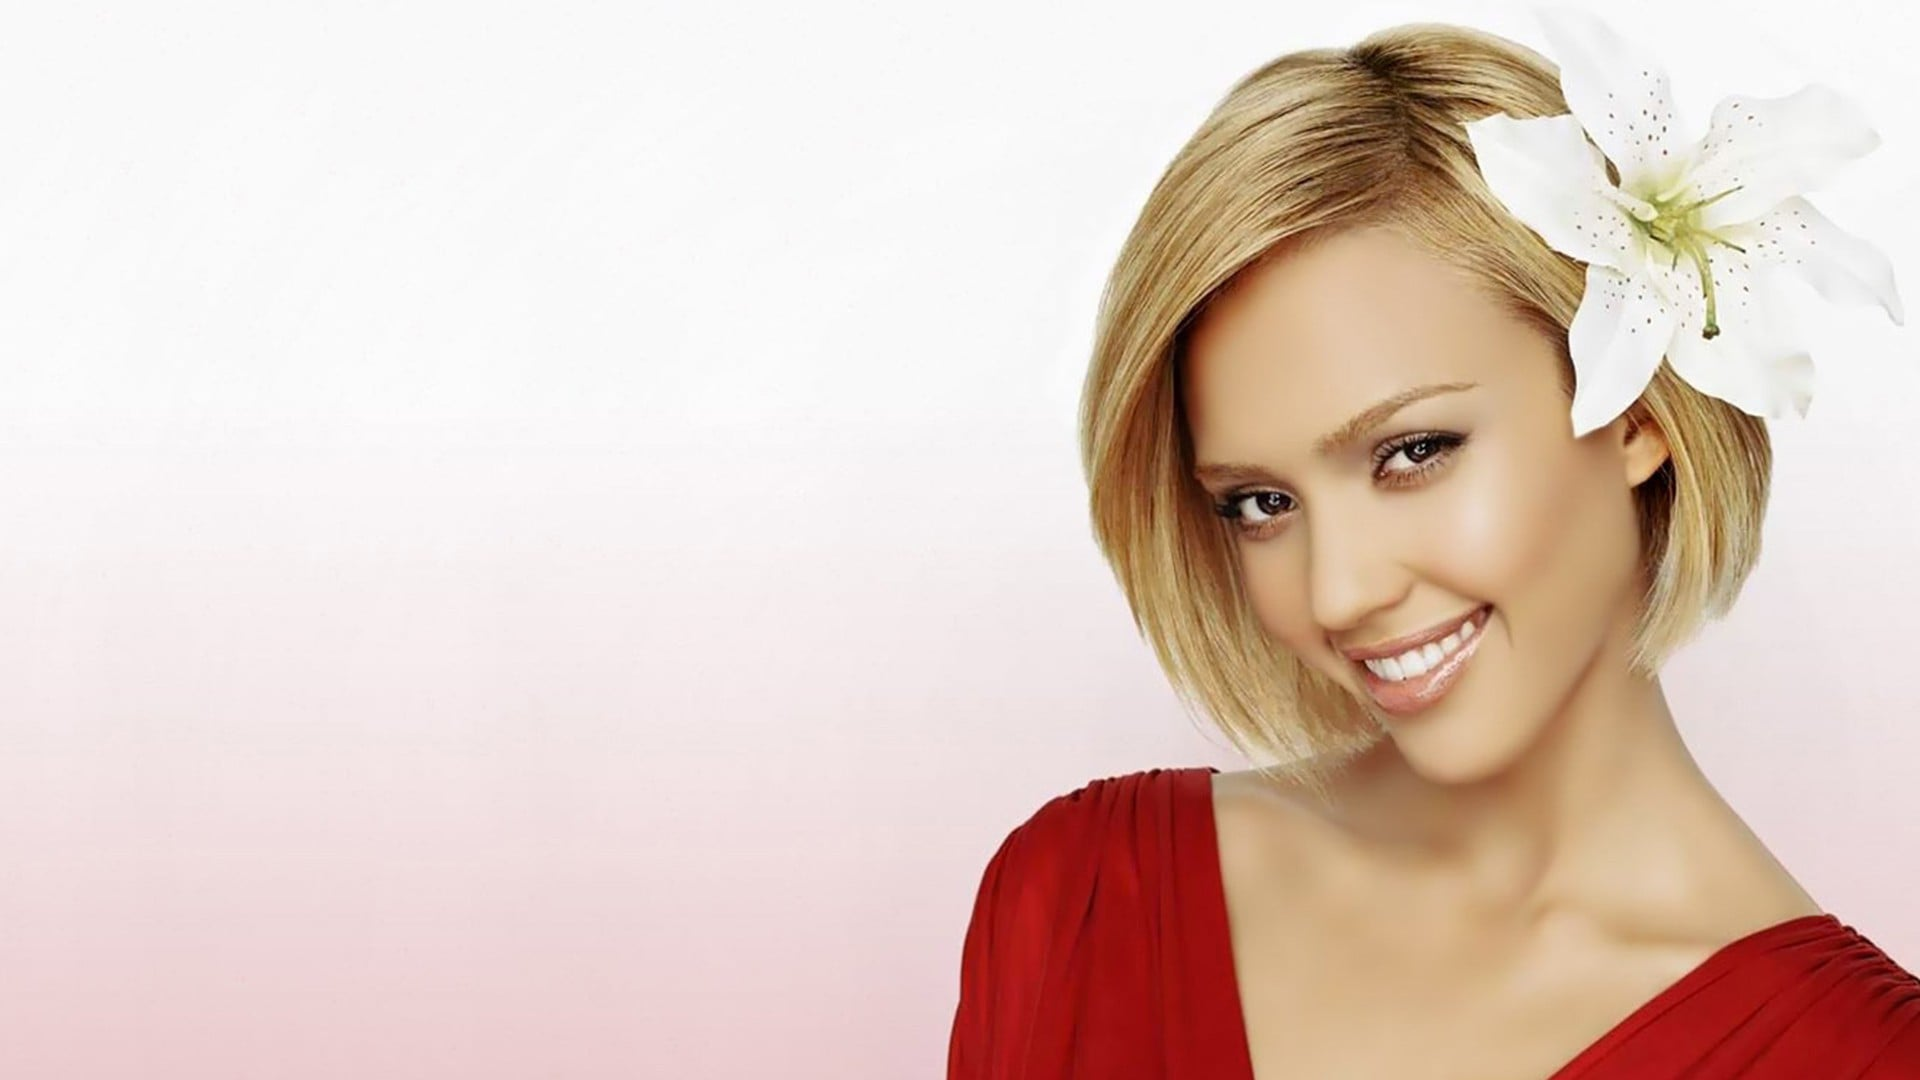 Angel Hd Wallpaper Download Jessica Alba Hd Wallpapers Free Download